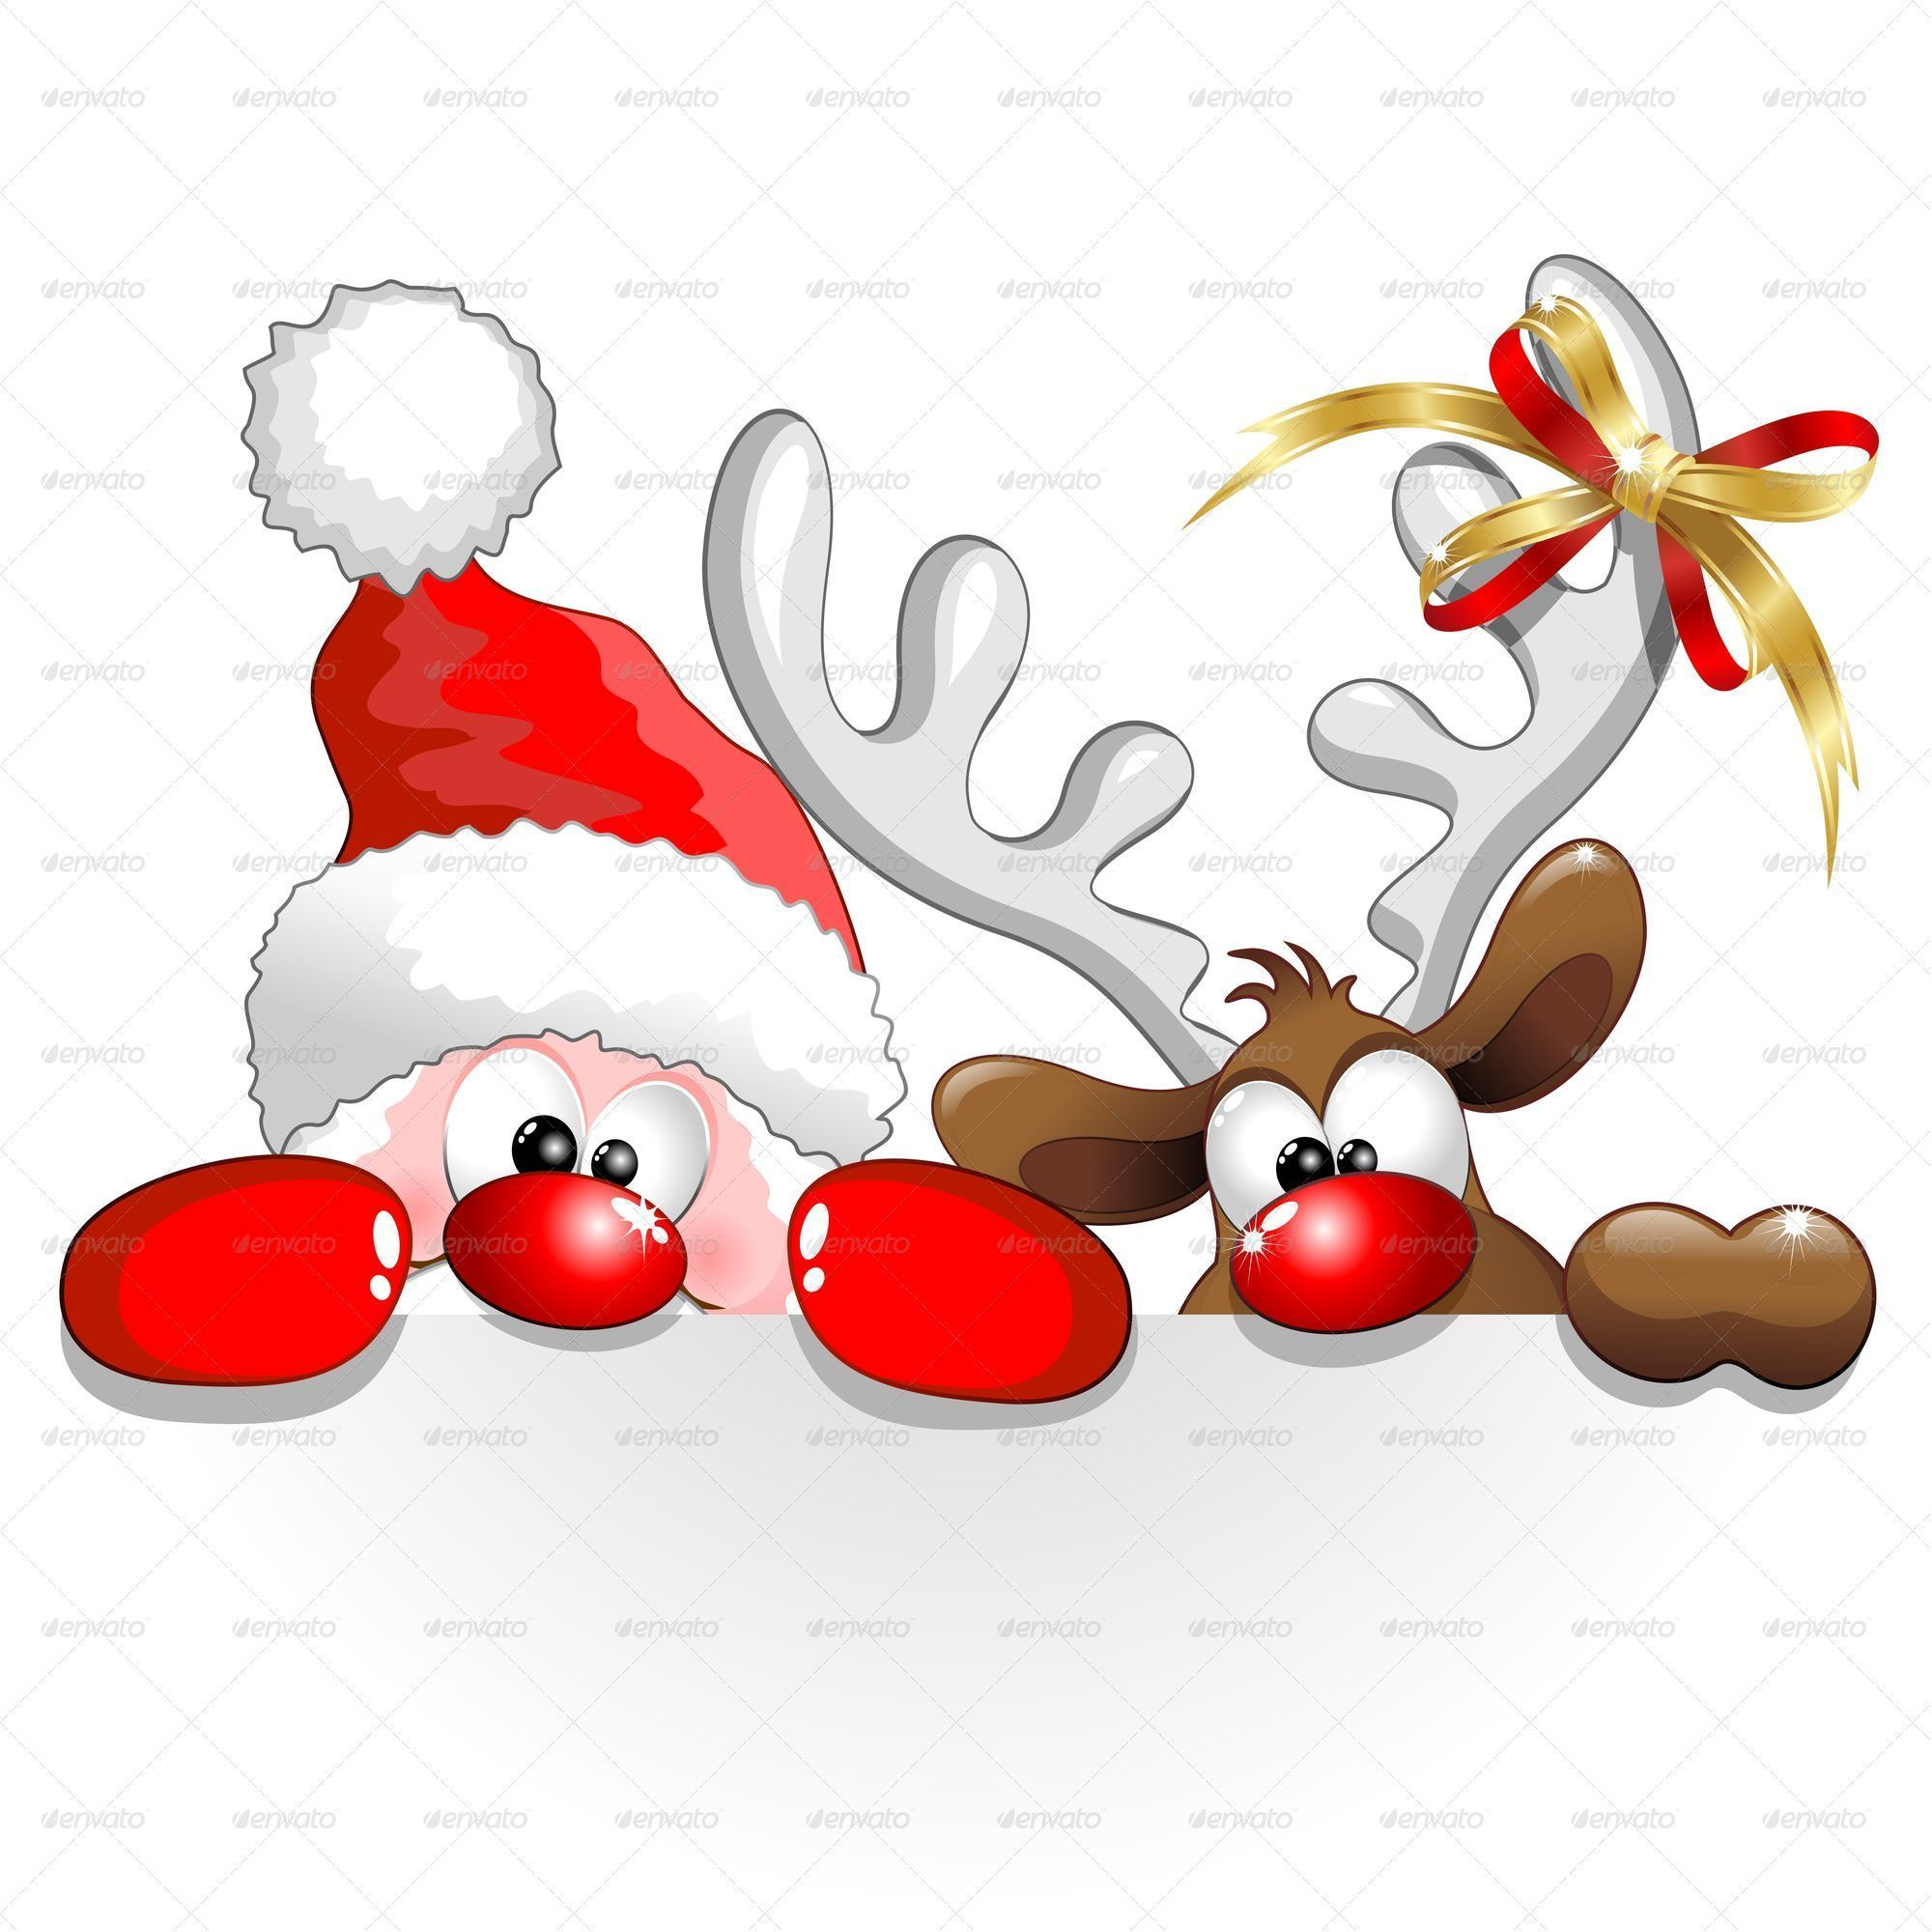 Buy Christmas Santa and Reindeer Cartoon by Bluedarkat on.